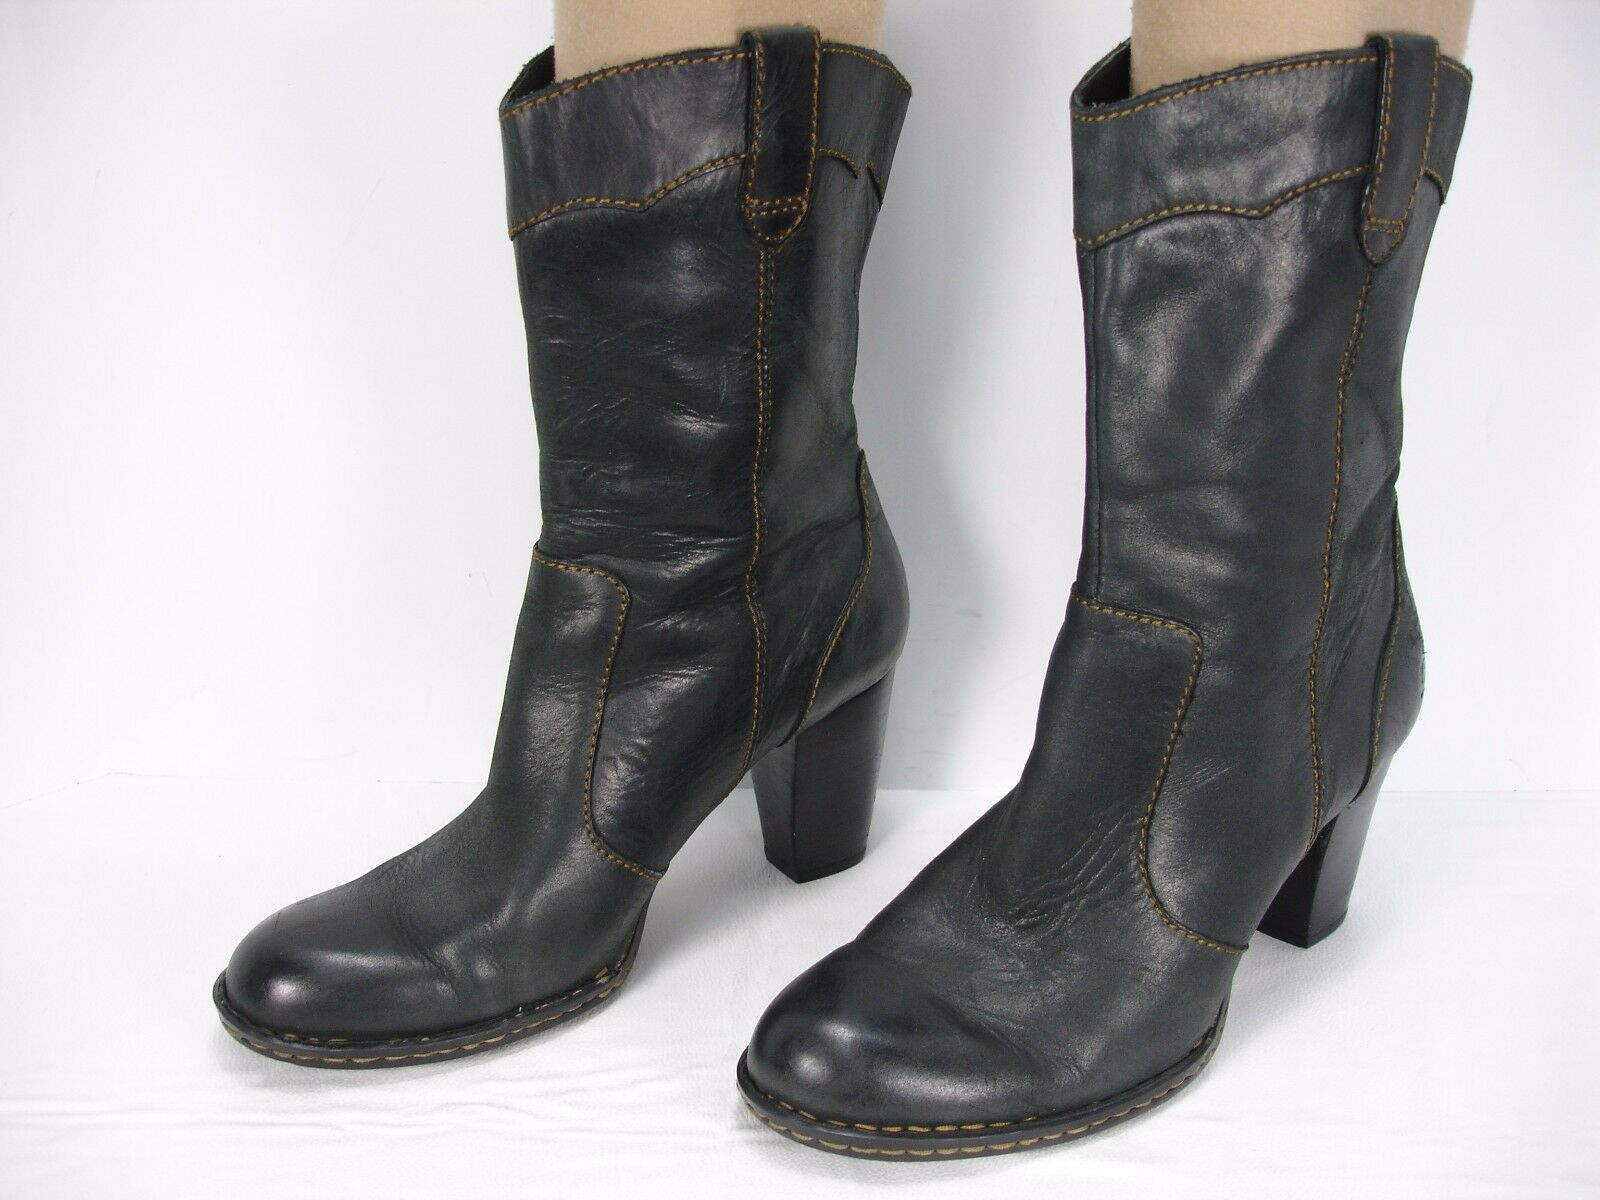 BORN CHARCOAL LEATHER PULL ON WESTERN ANKLE BOOTS WOMEN'S 8.5 M